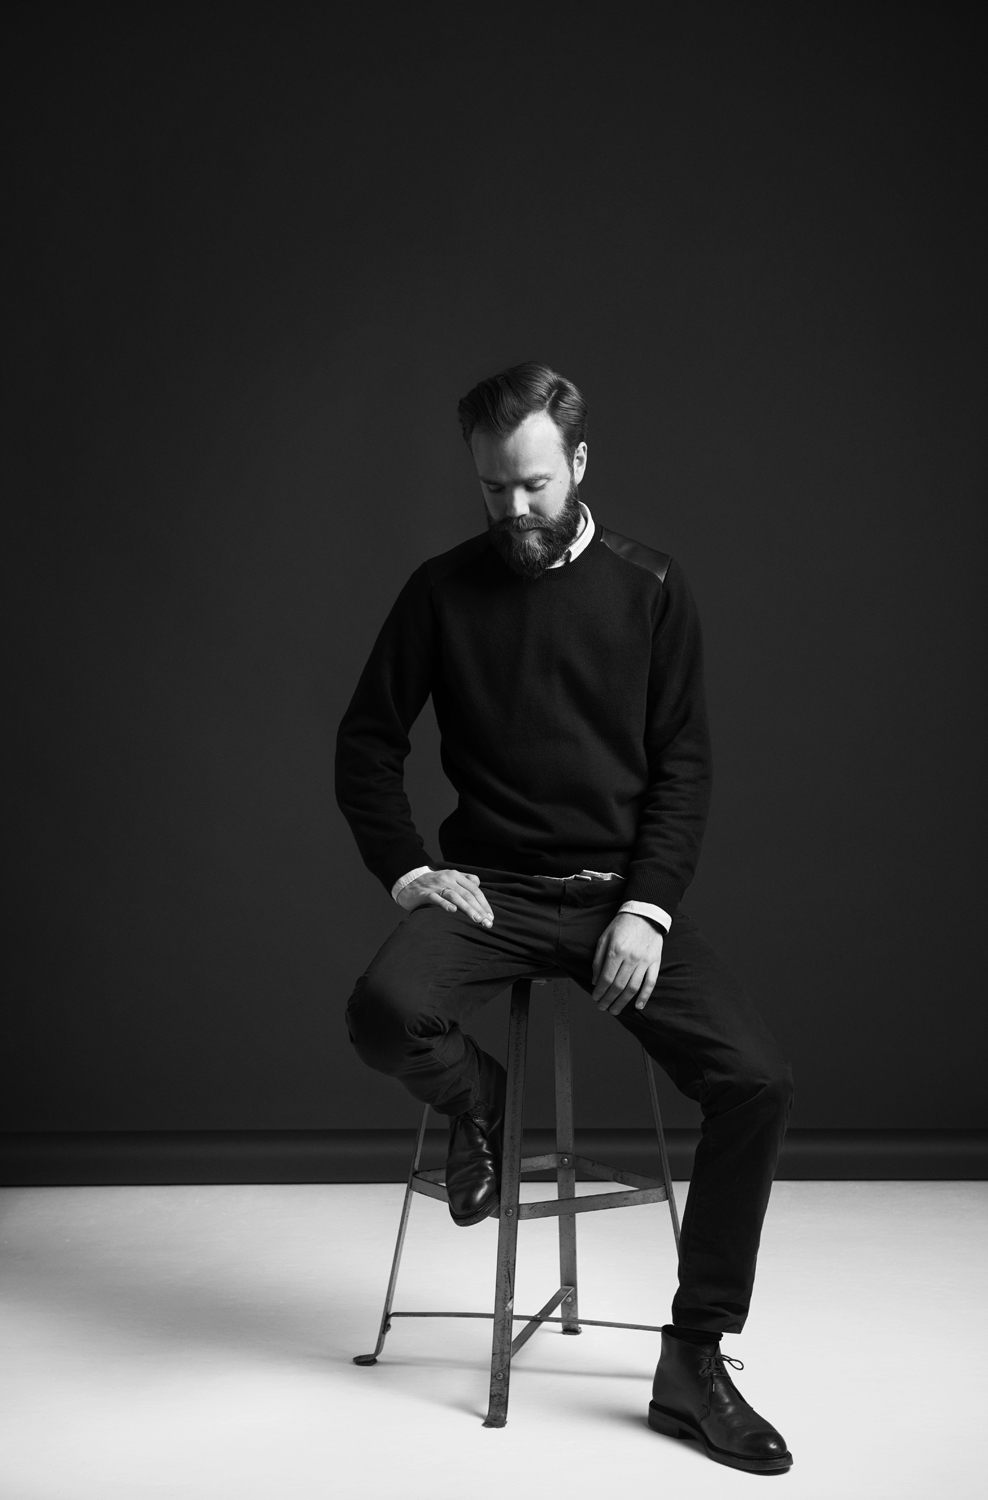 Knut Bendik Humlevik , Copenhagen Creative Director of New Works